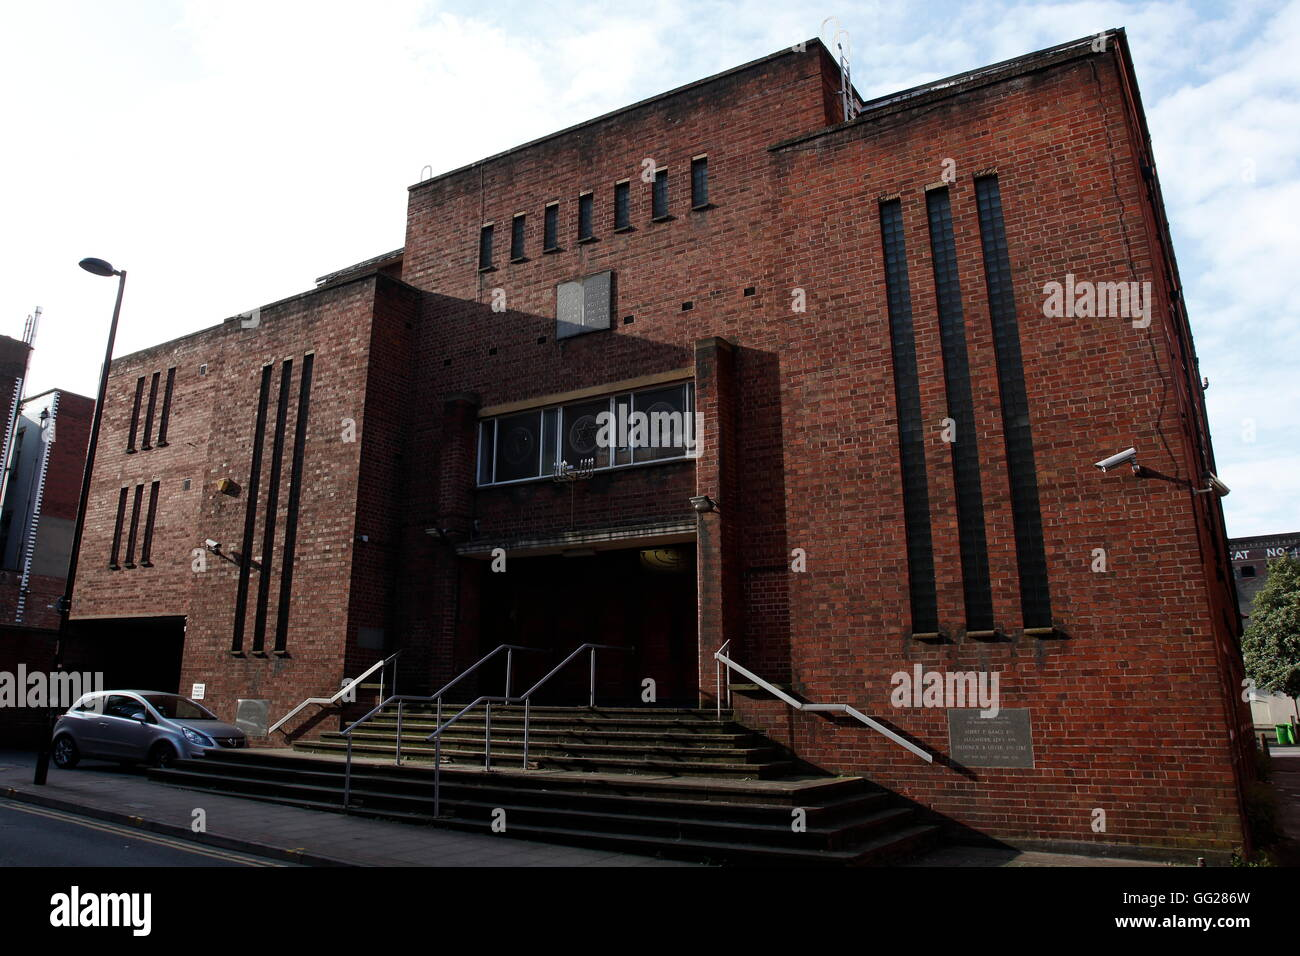 The Manchester Reform Synagogue, in Jackson's Row, Central Manchester, UK. - Stock Image